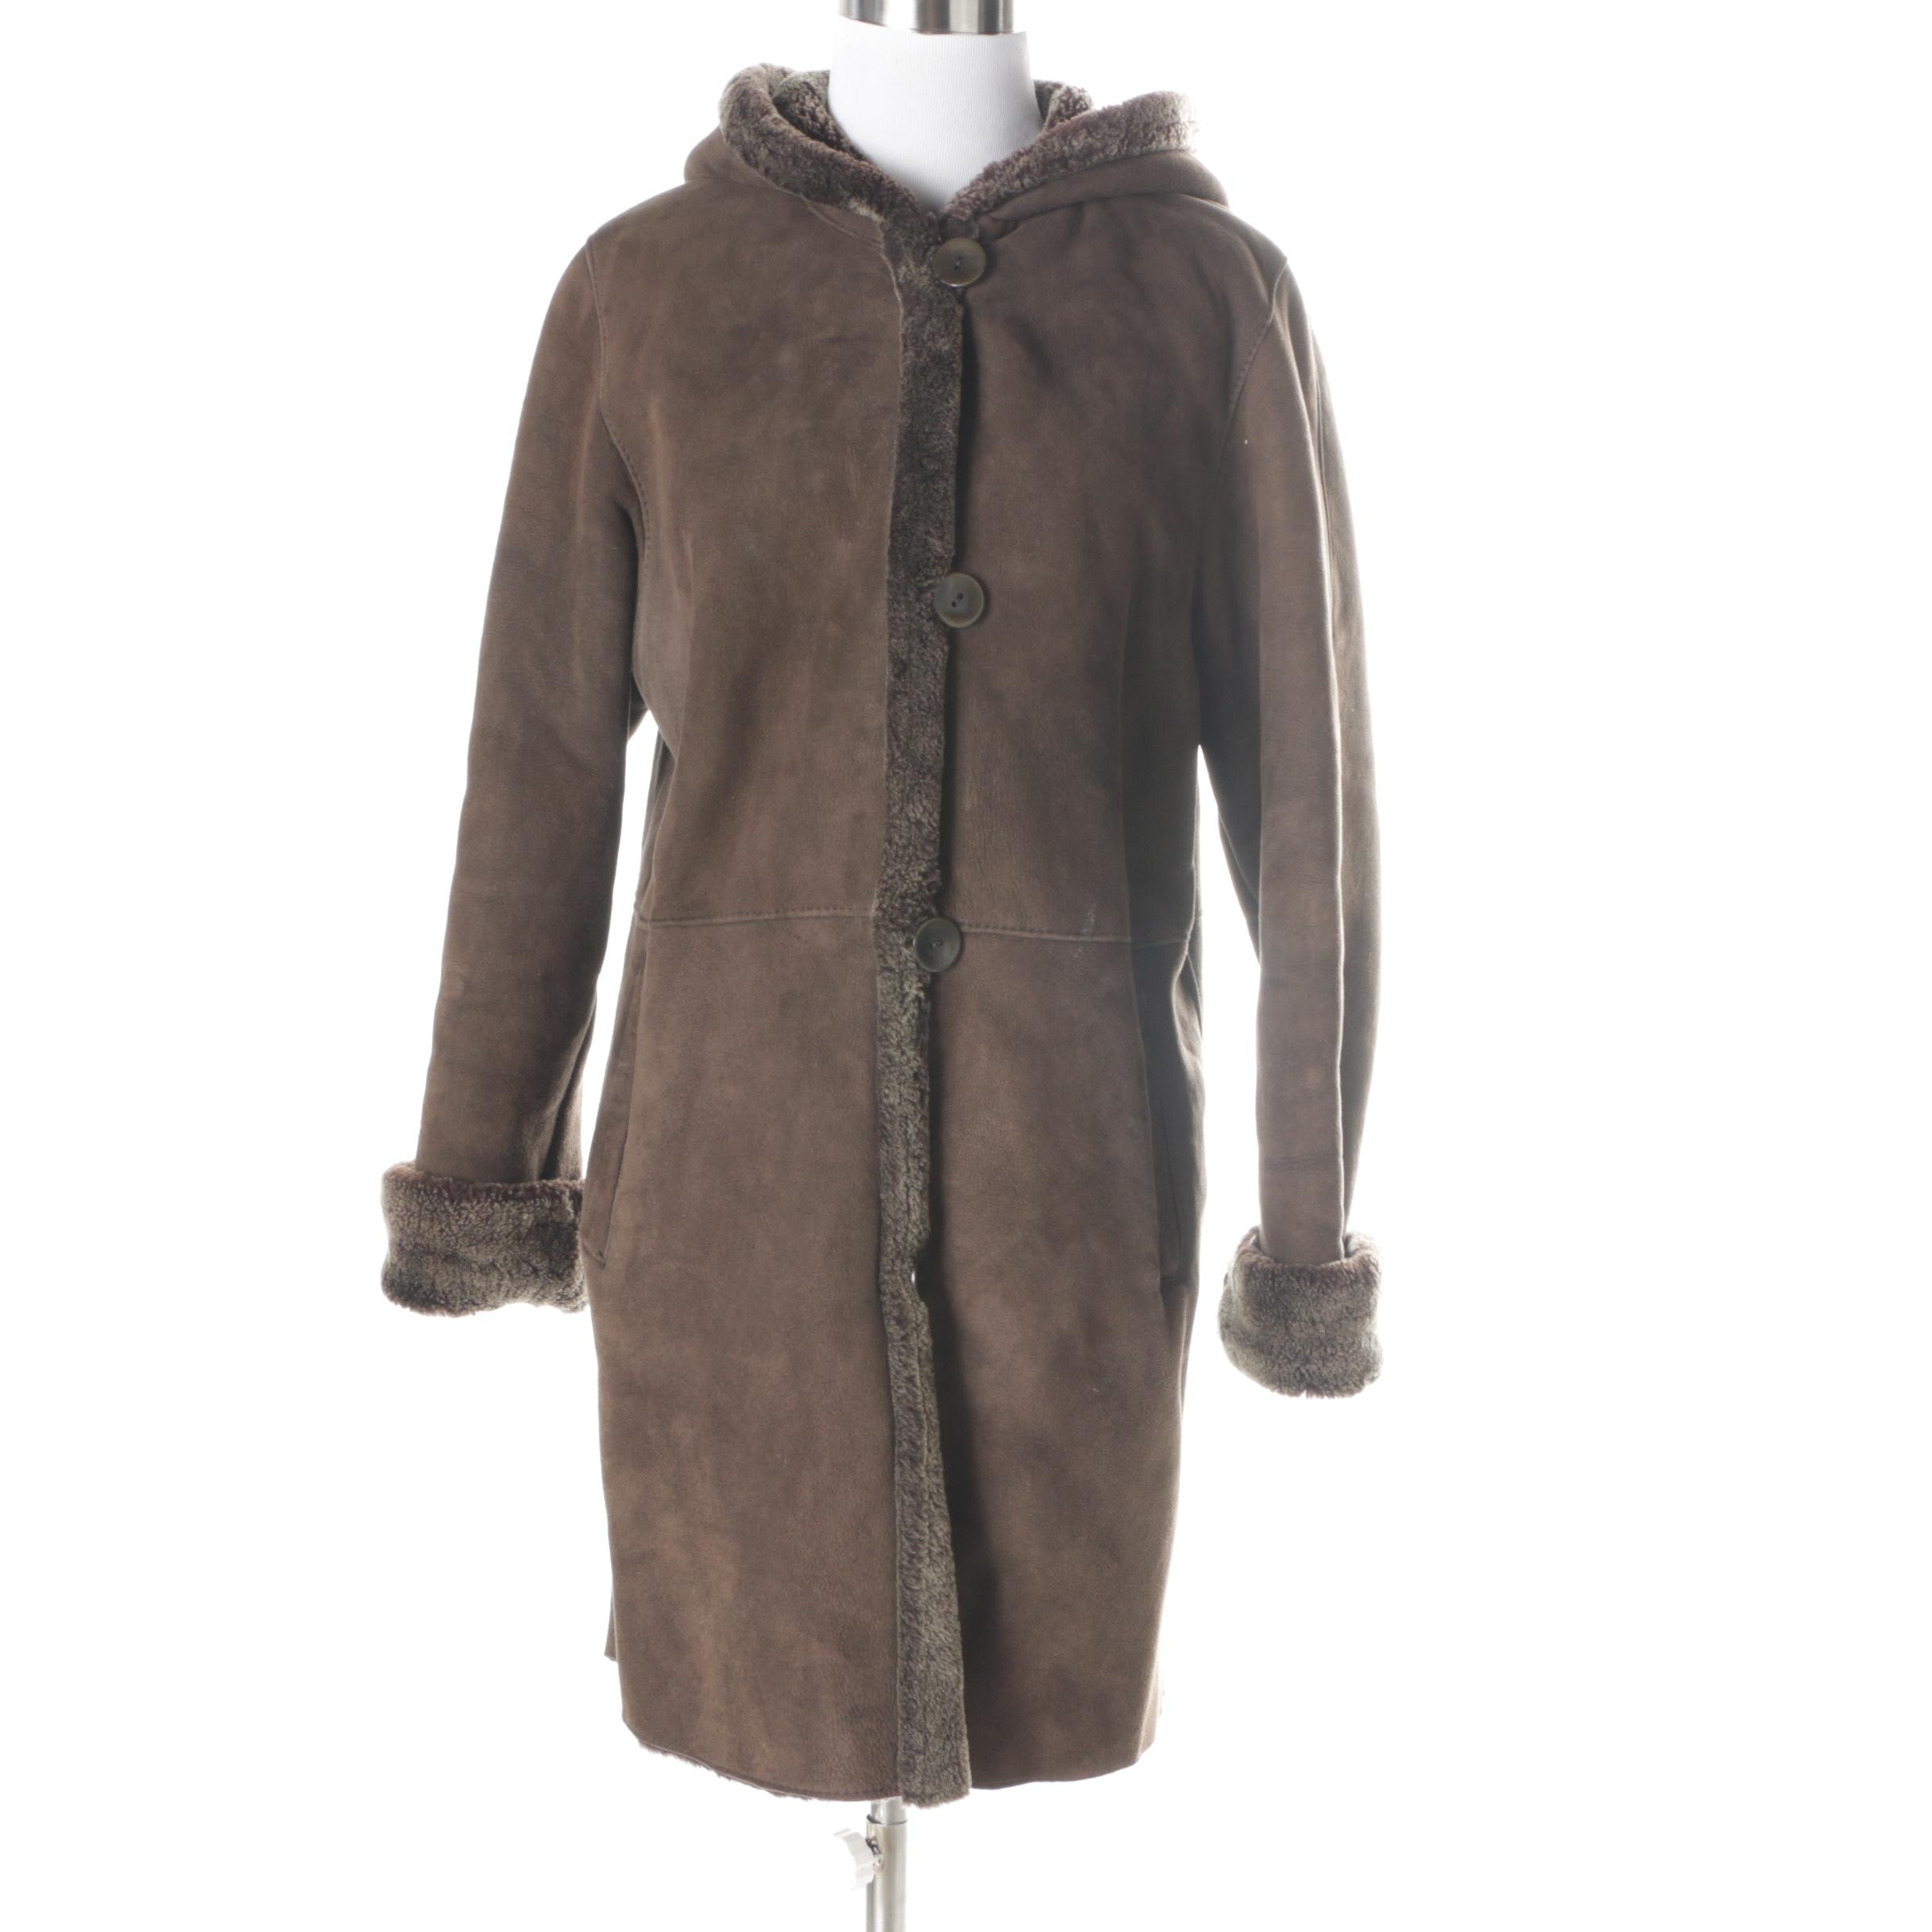 Blue Duck Leather and Shearling Coat